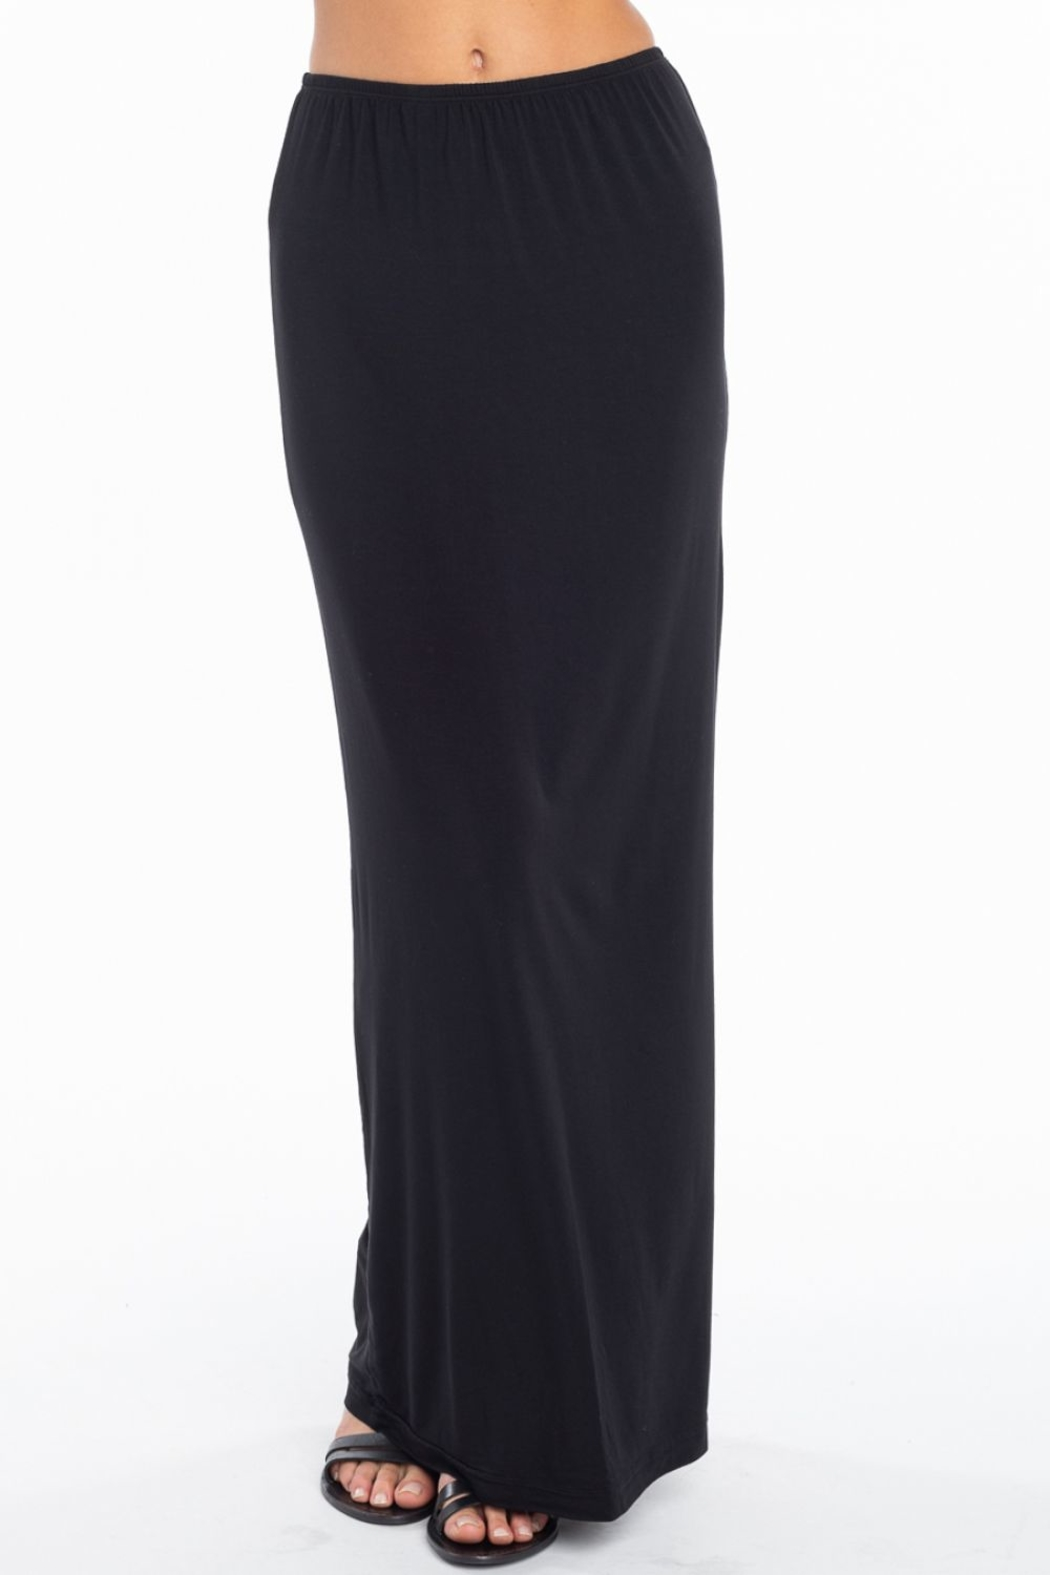 Hard Tail Hardtail Modal Maxi Skirt SIR-12 - Back Cropped Image